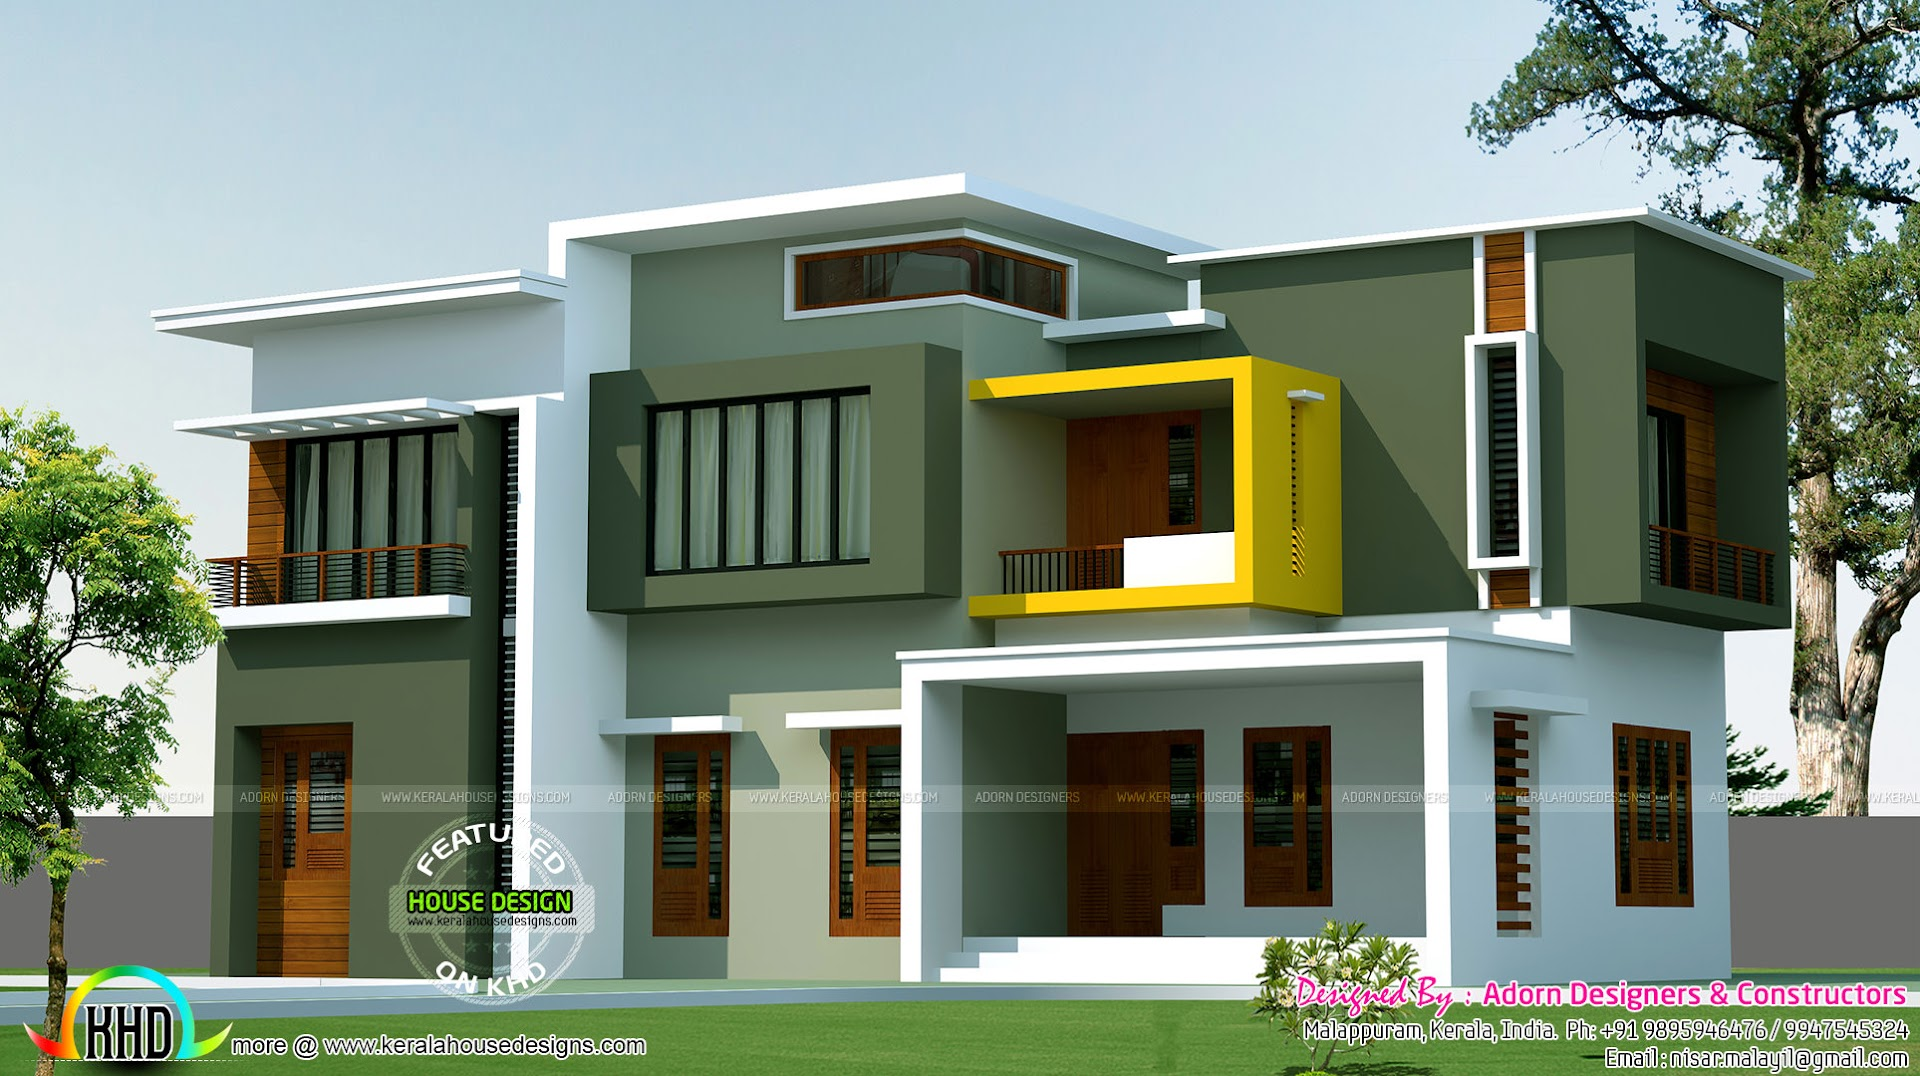 Box model contemporary house 2500 sq ft kerala home for Modern house plans under 2500 square feet